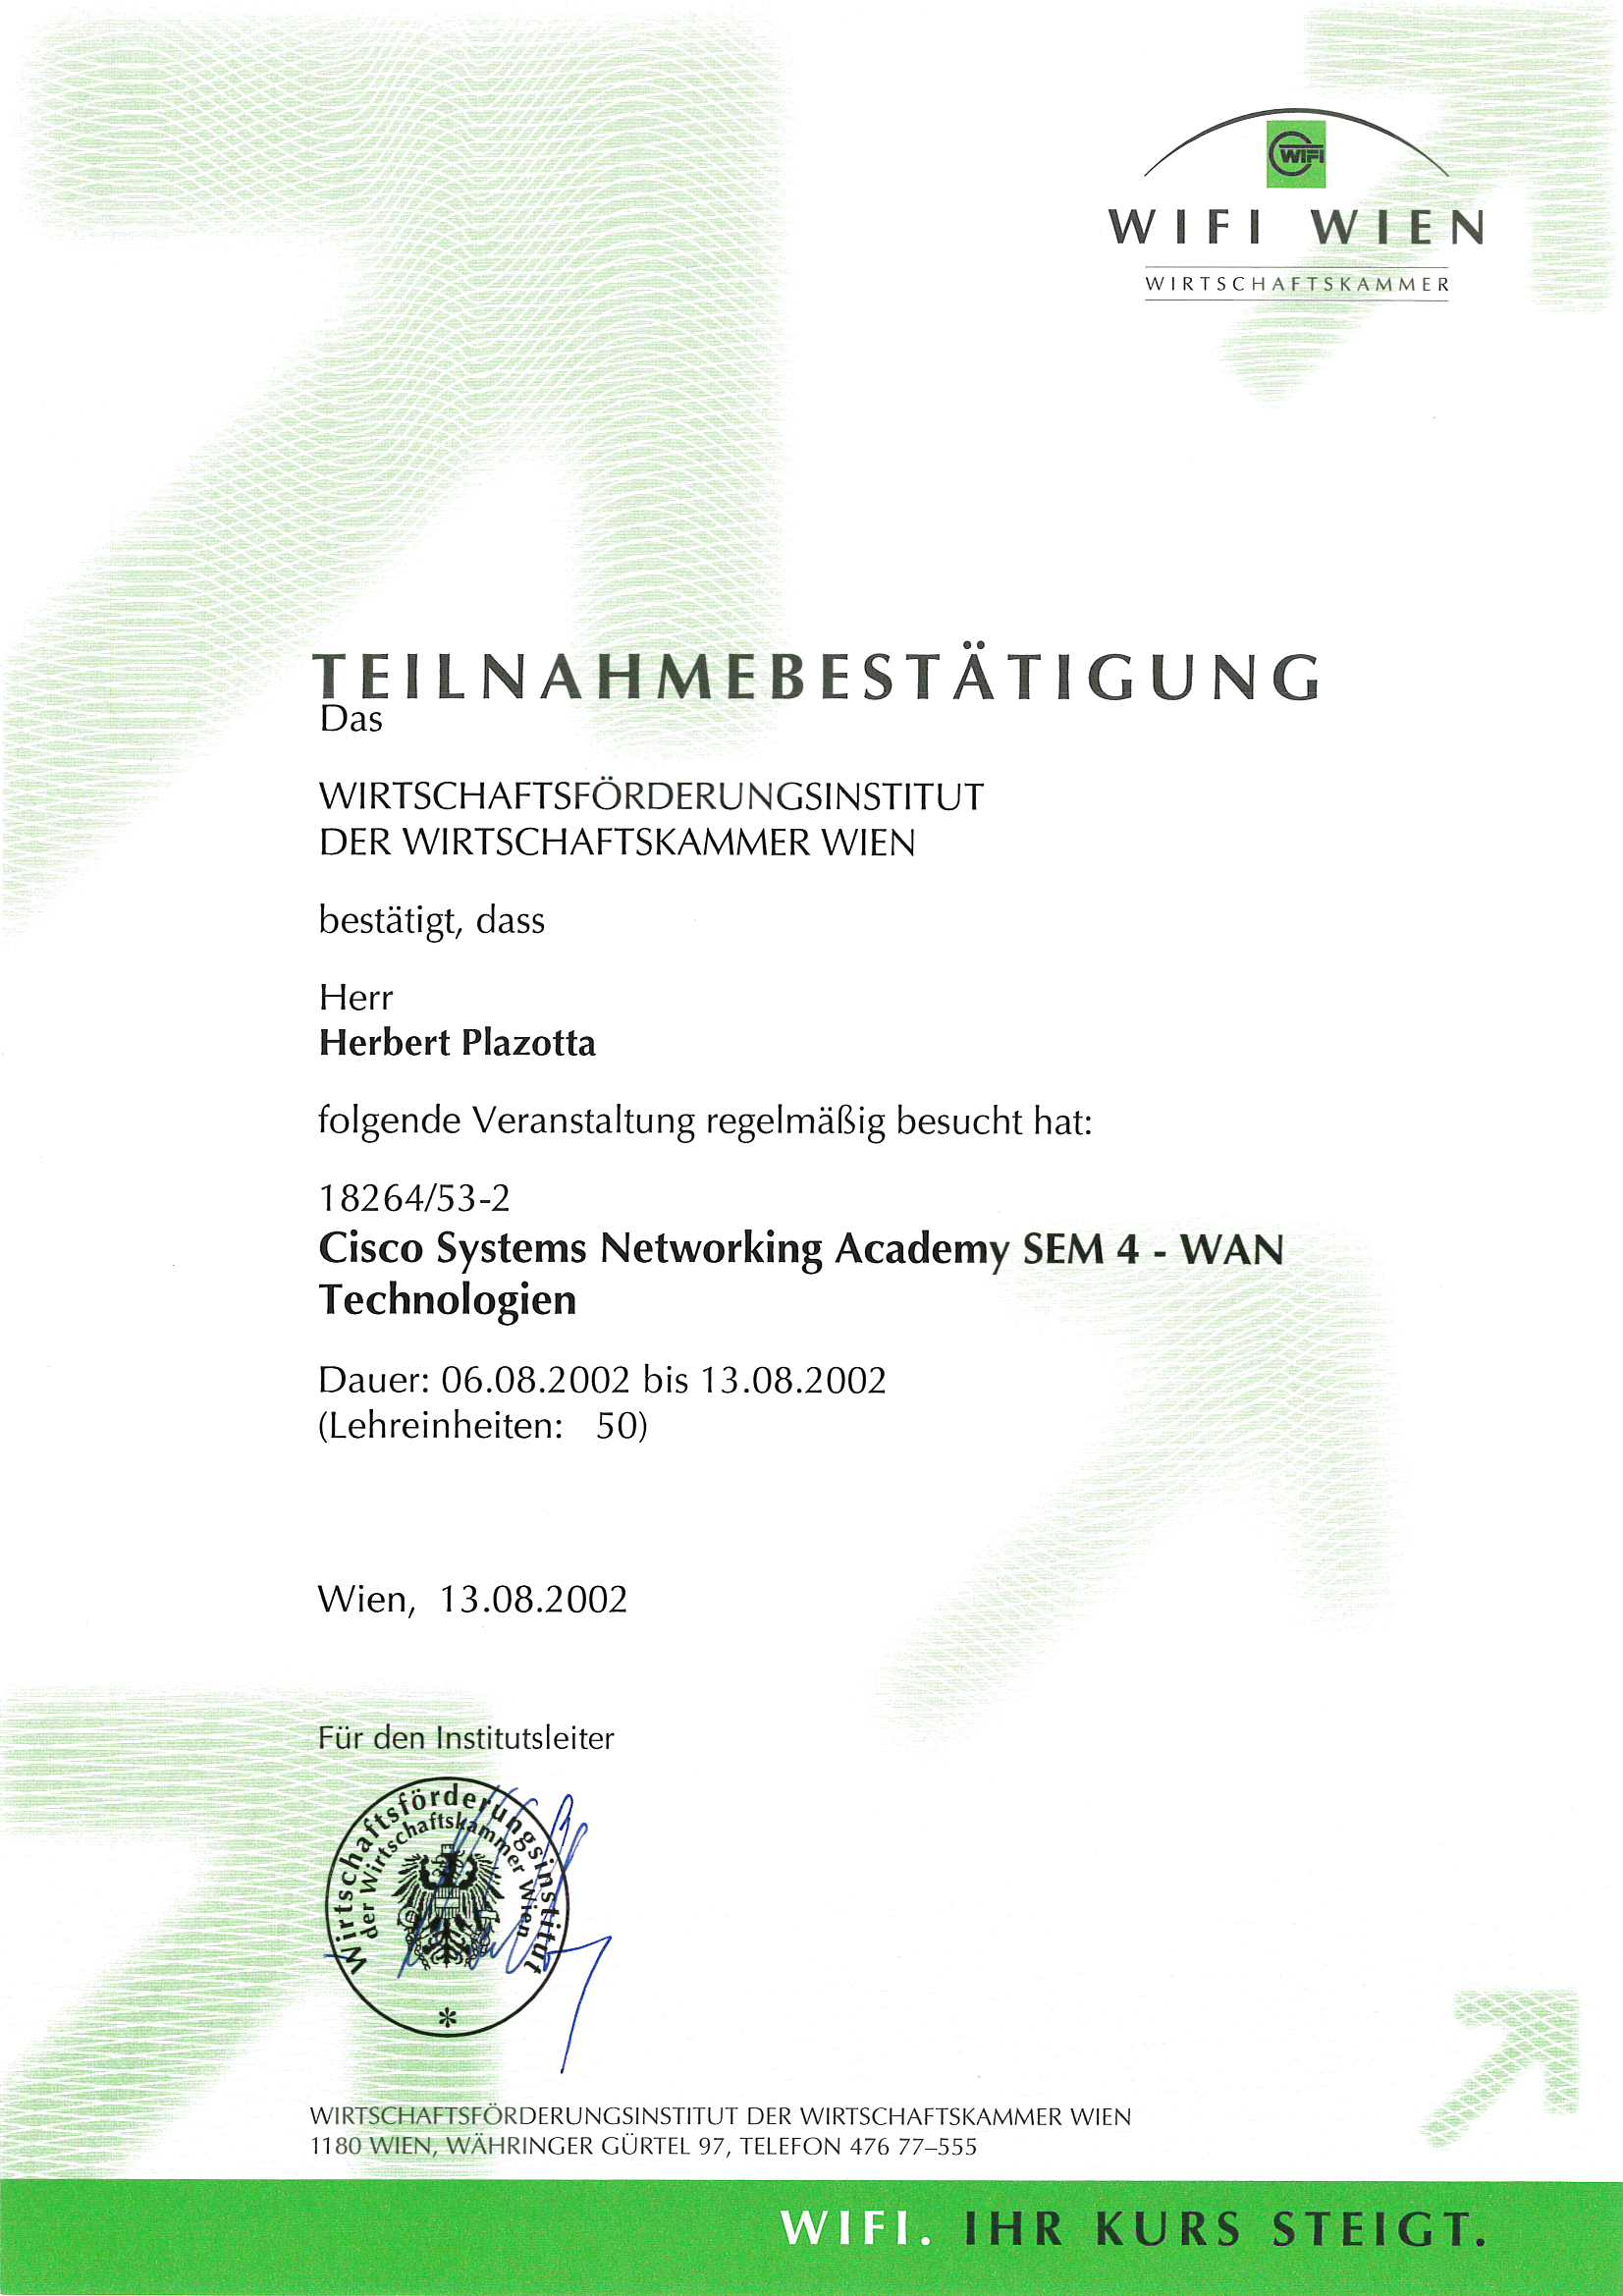 Cisco Networking Academy Wan Technologien.jpg